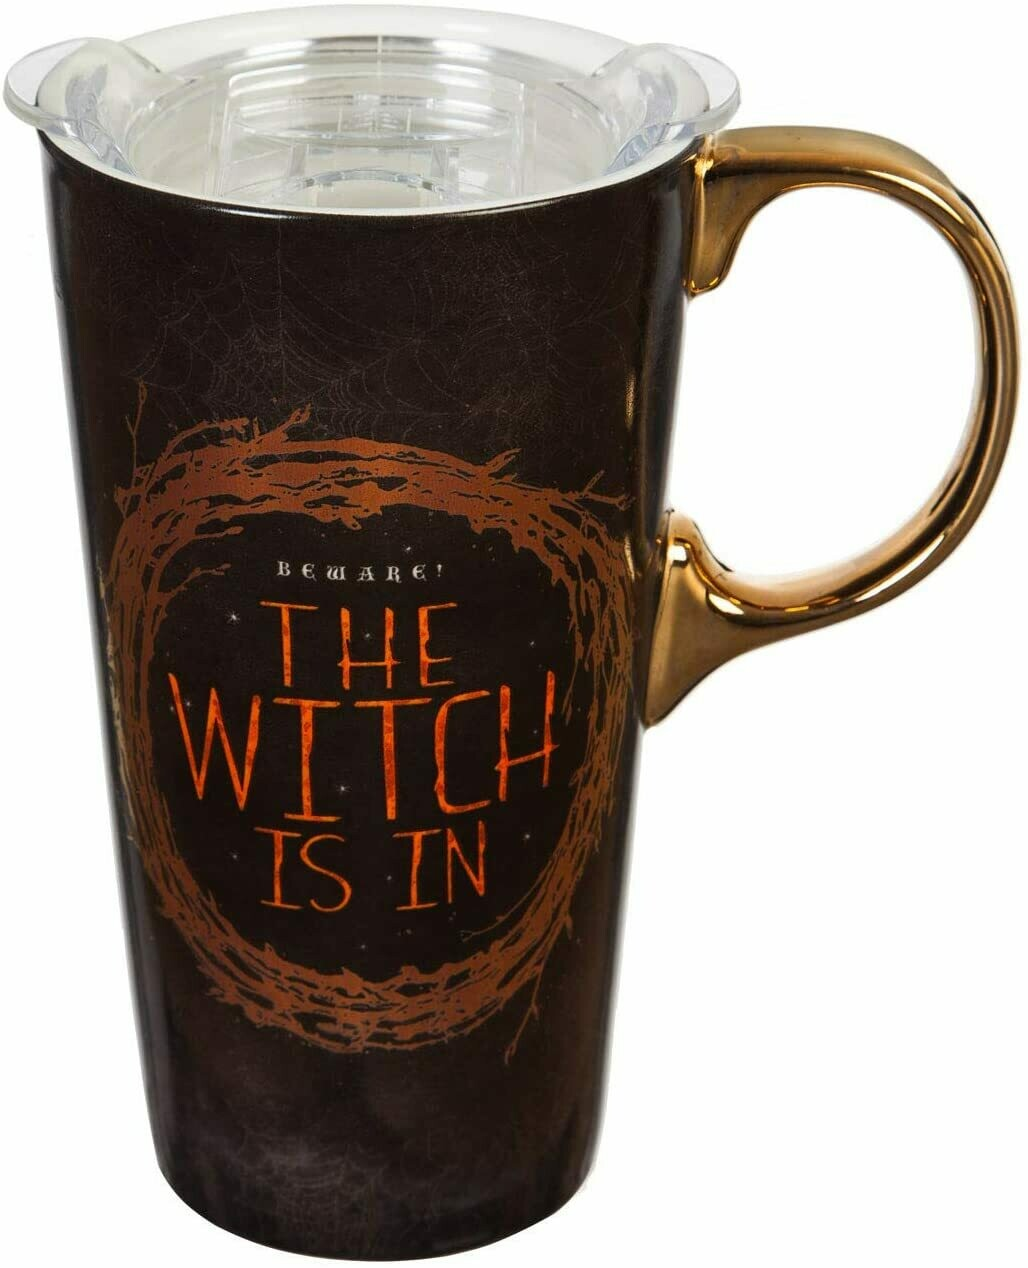 """The Witch Is In"" Ceramic Travel Cup with Tritan Lid and Matching Box - 4 x 5 x 7 Inches"